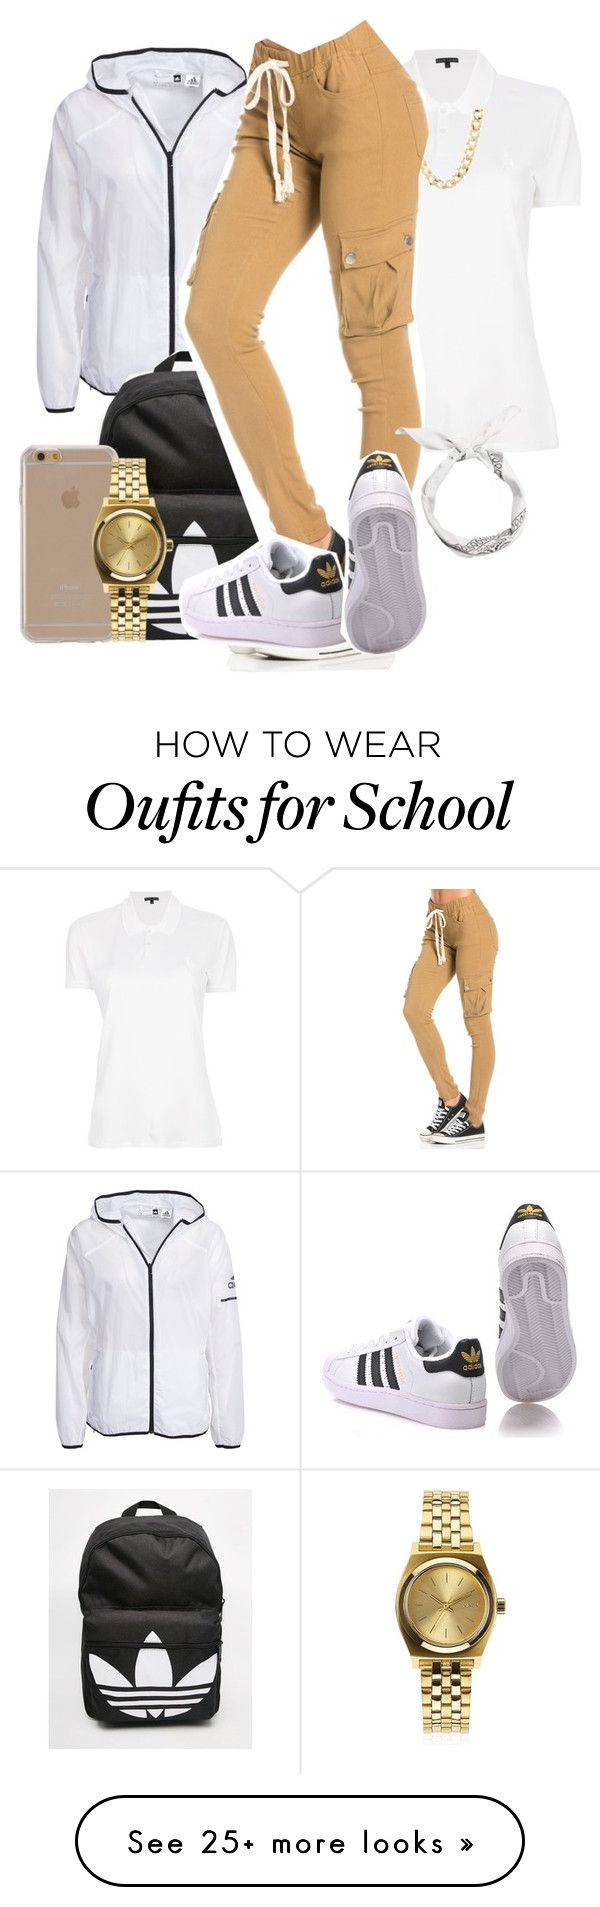 """School flow"" by kitty-ma on Polyvore featuring Ralph Lauren, adidas, Charlotte Russe, adidas Originals, Agent 18 and Nixon"